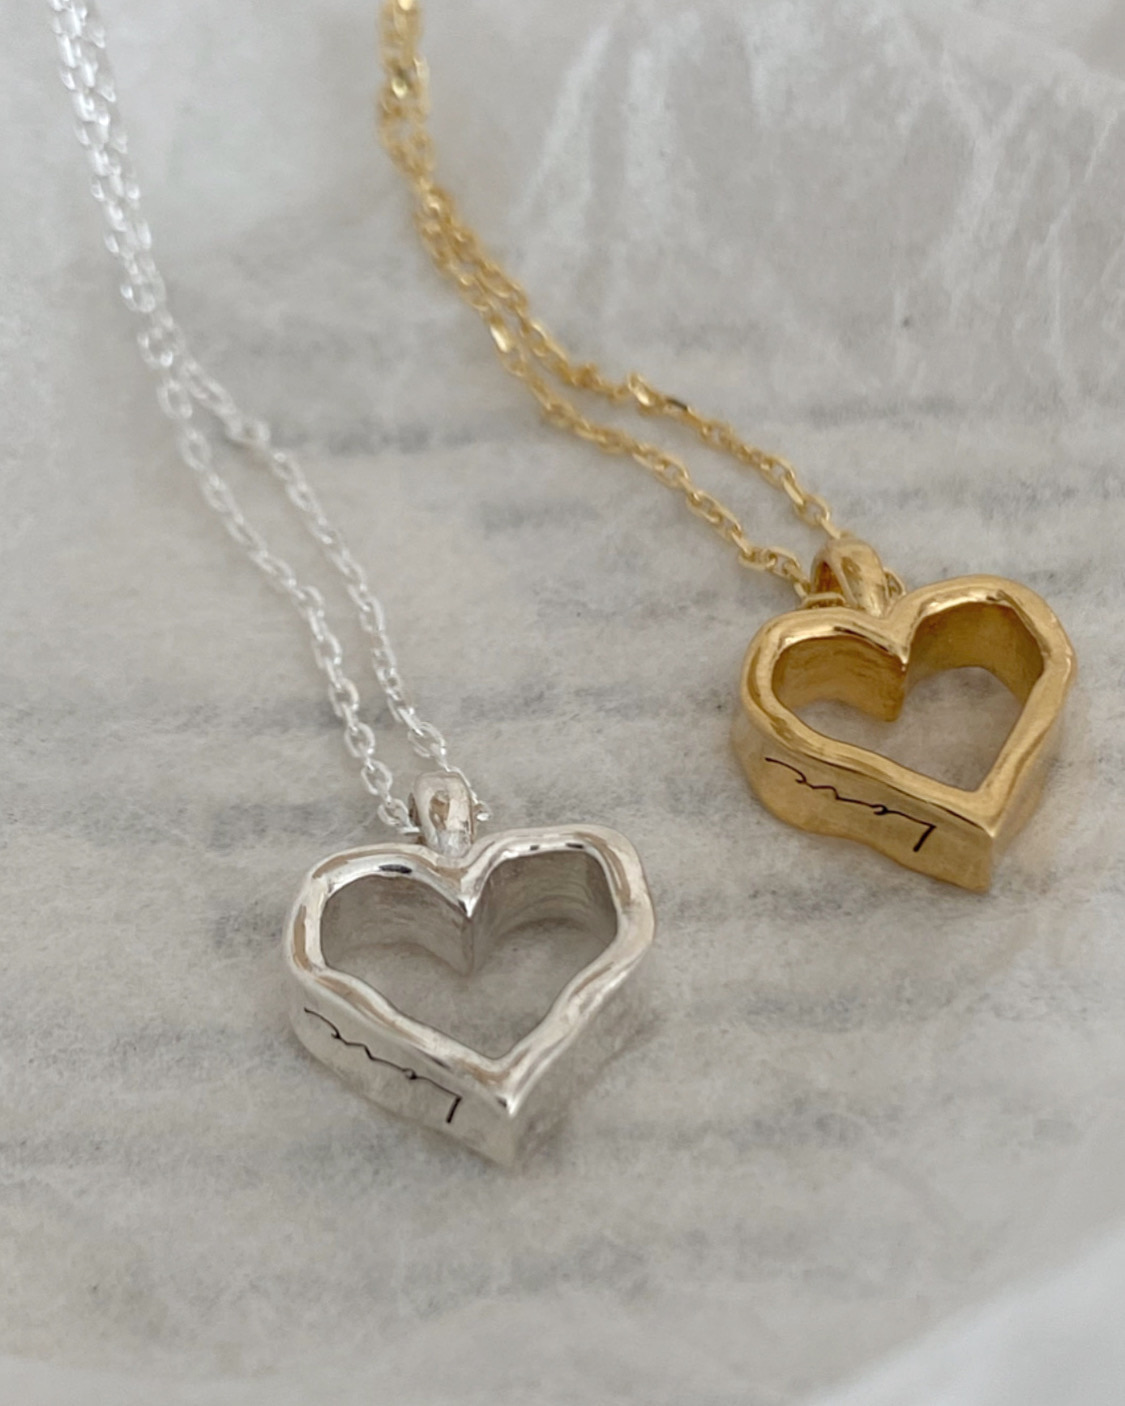 [92.5 silver, 각인가능] amo te necklace (2 color)